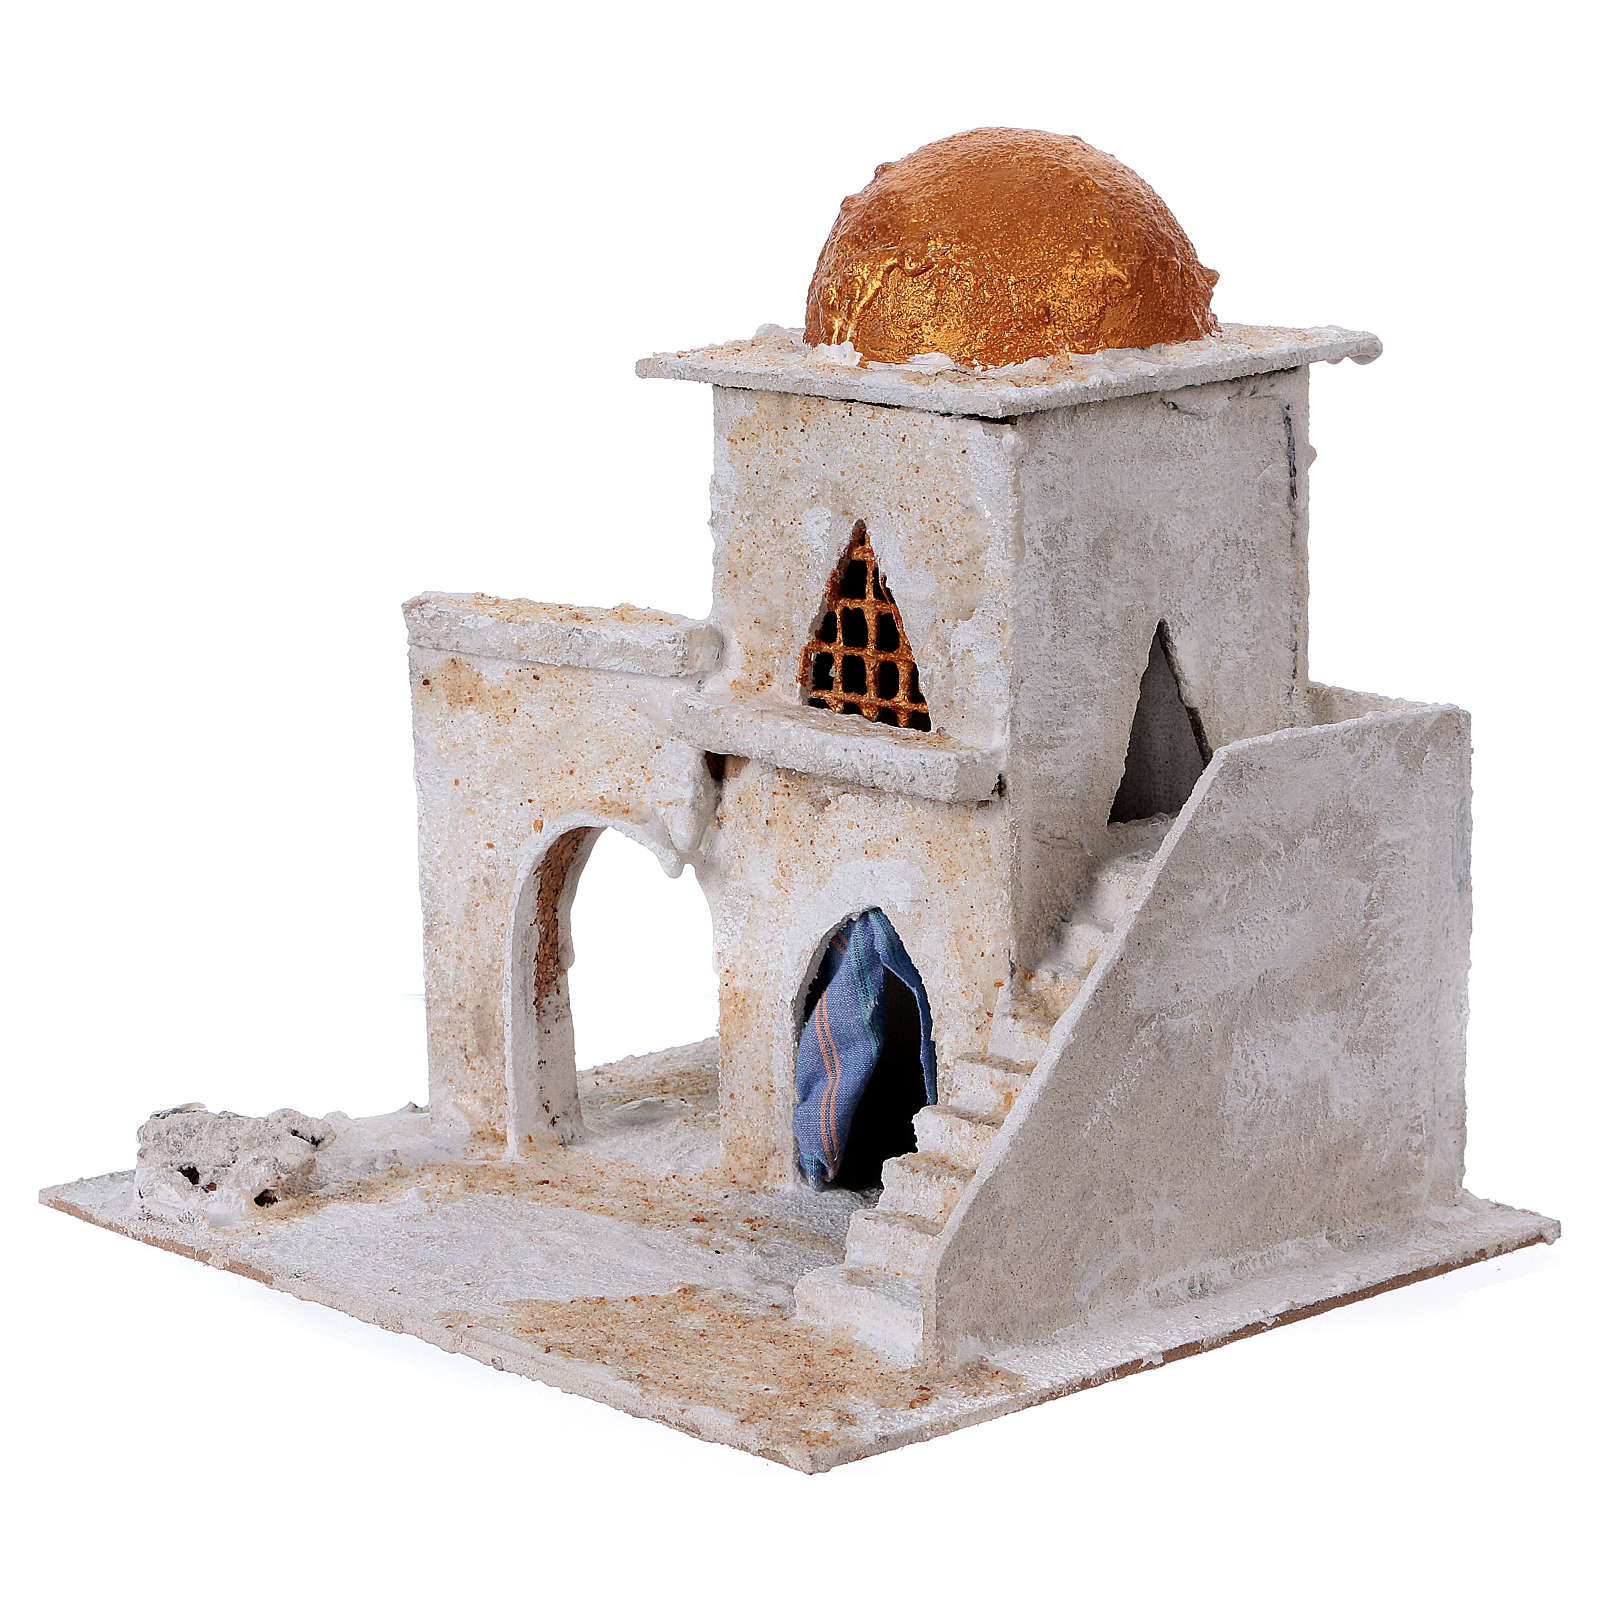 Arab house with stairs and archway for Nativity scene 25x25x20 cm 4